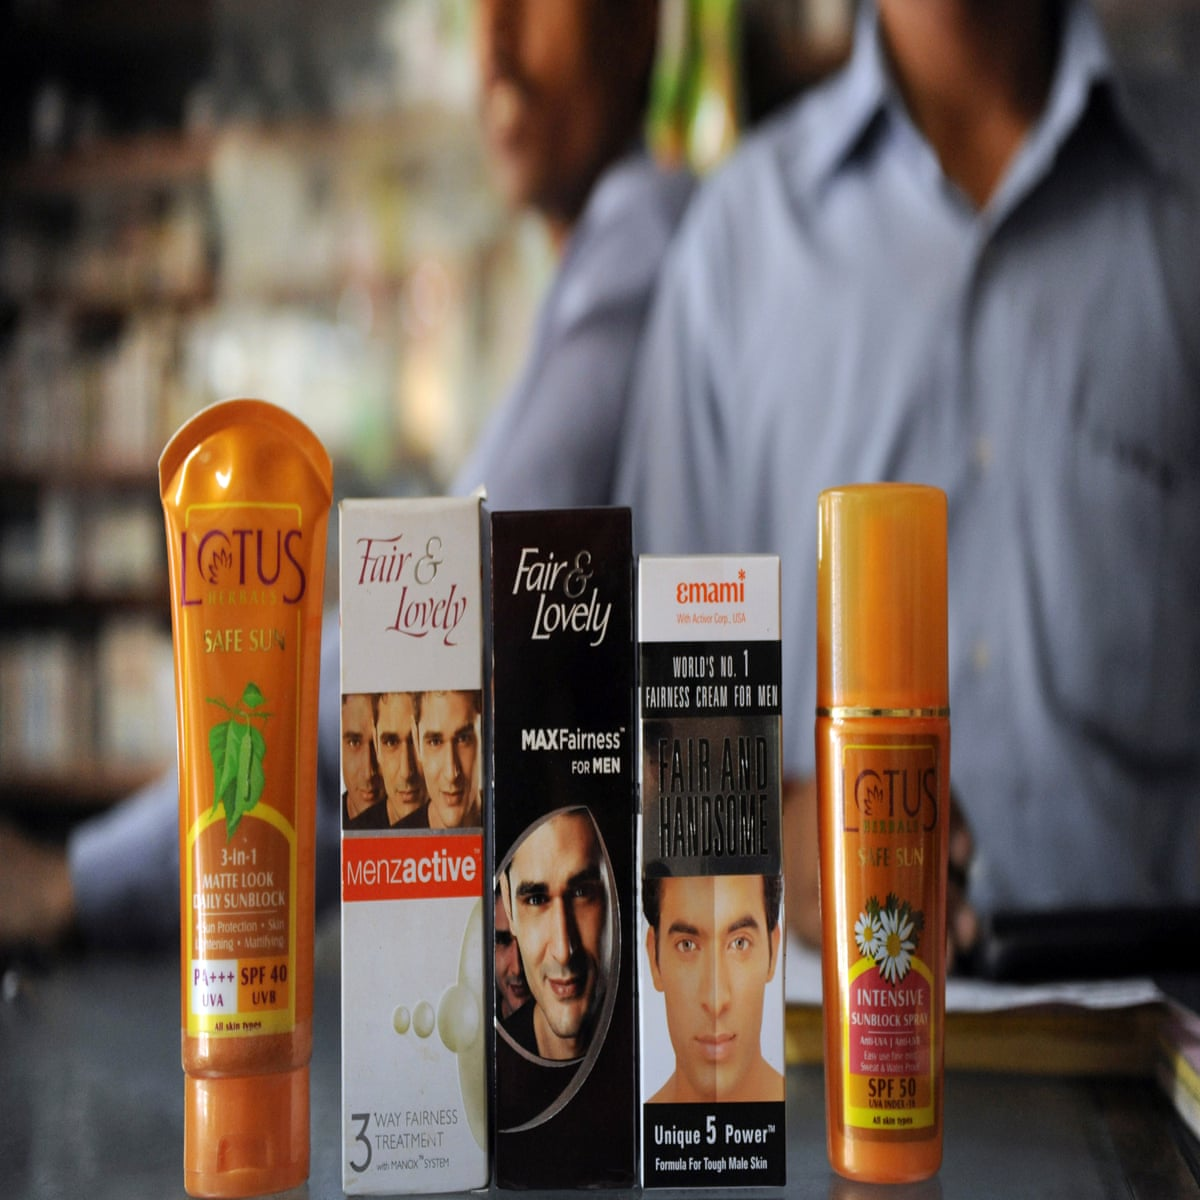 5369f56924 Skin-lightening creams are dangerous – yet business is booming. Can the  trade be stopped